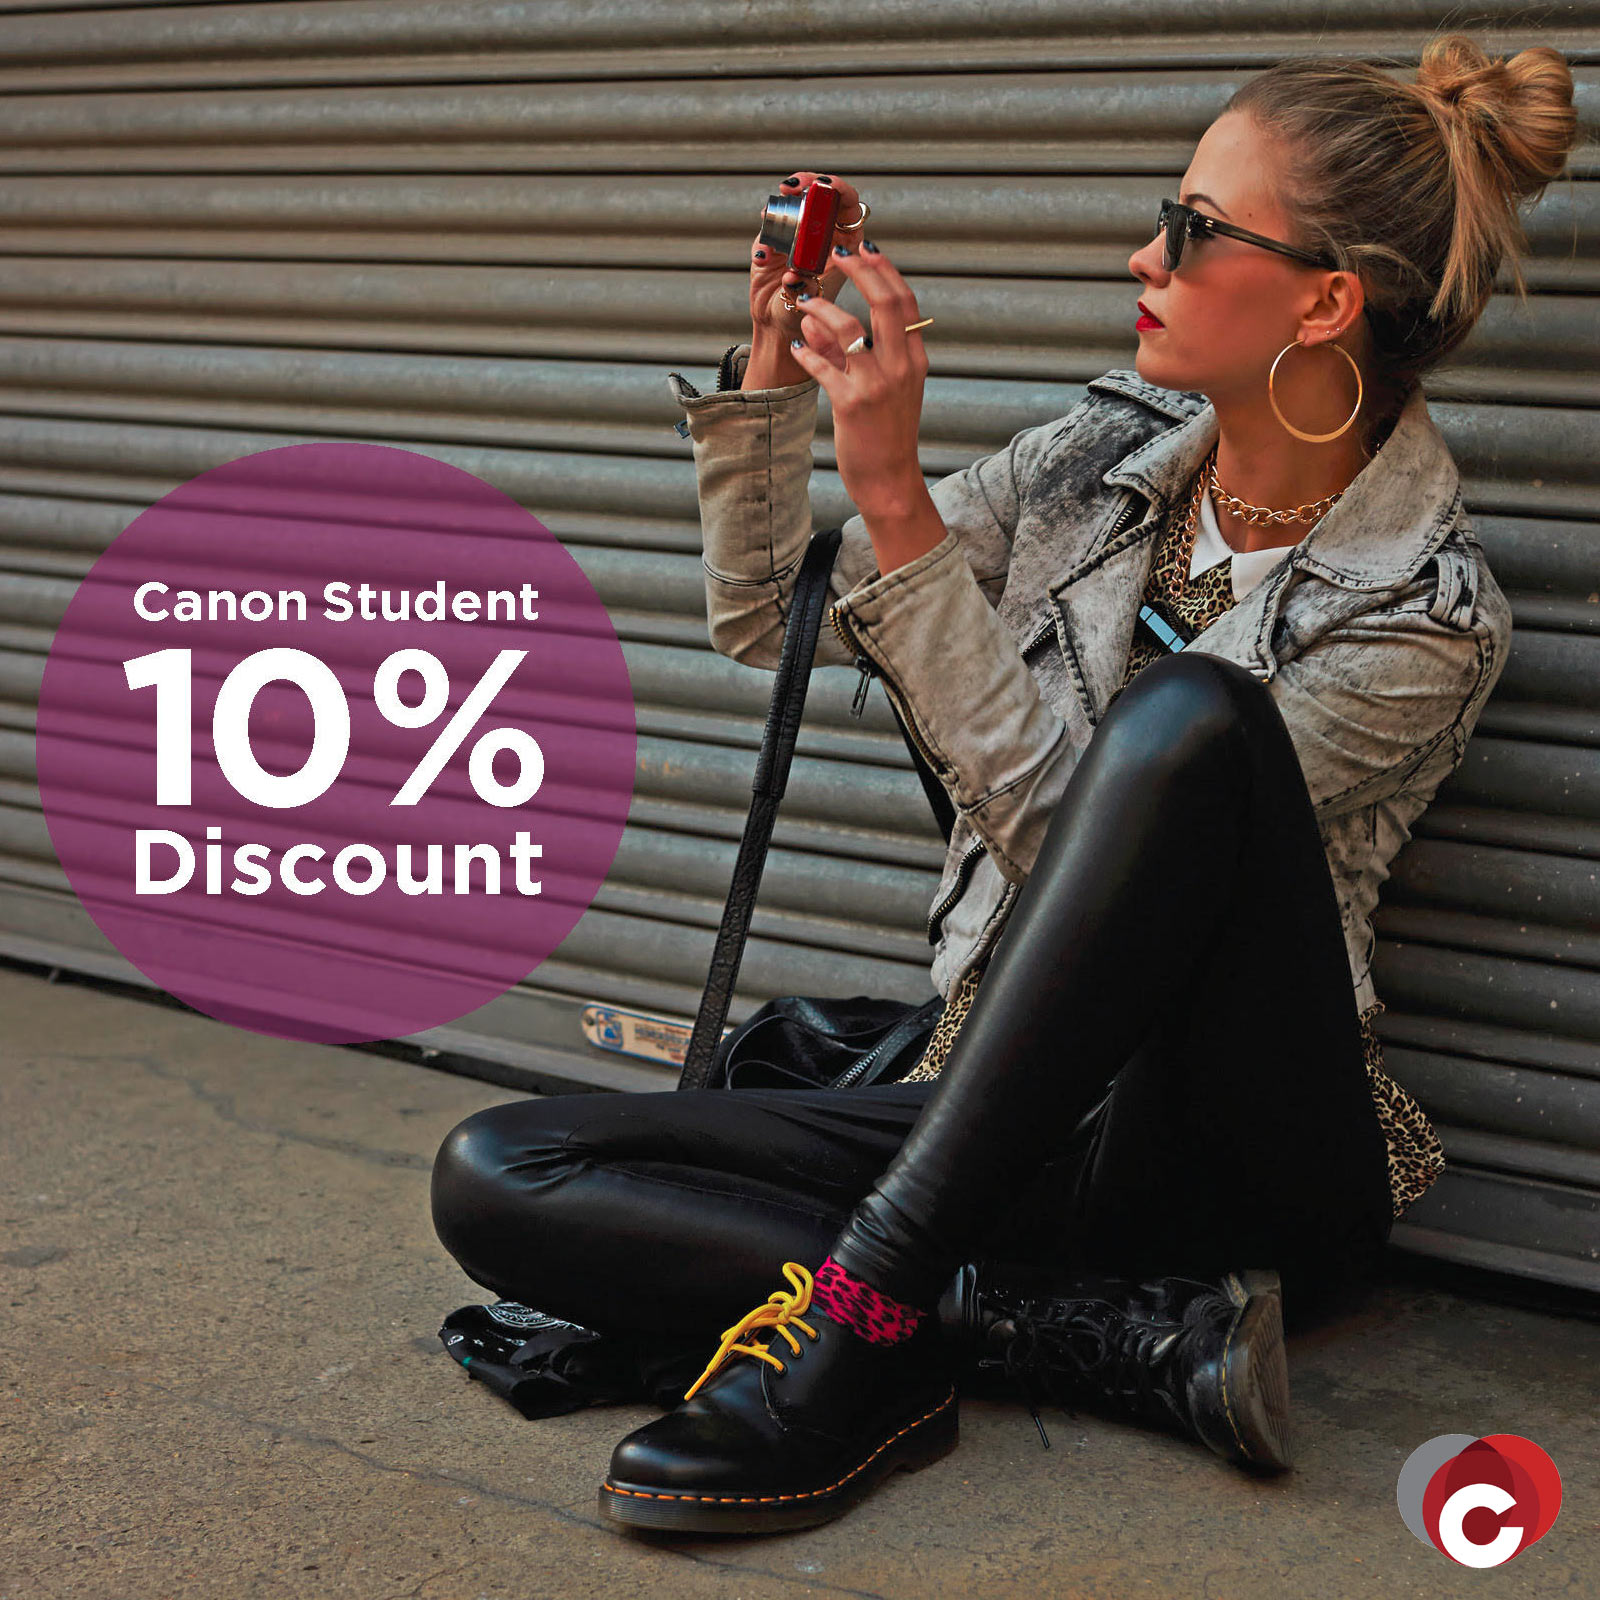 Canon Student 10% Discount at Cameraland